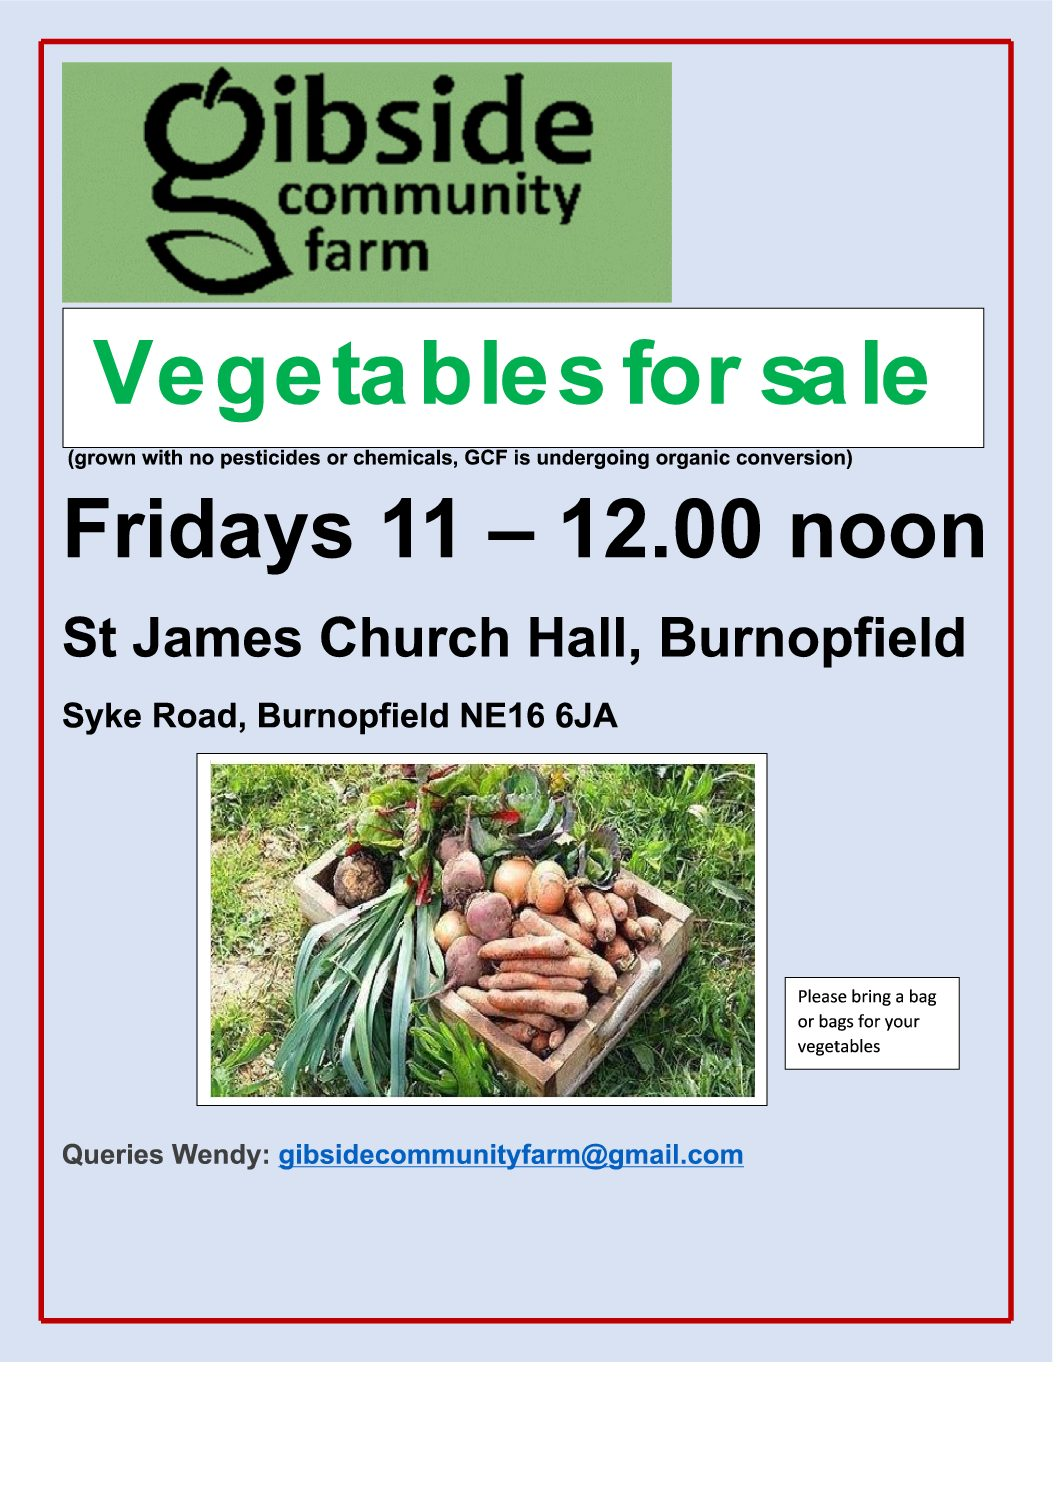 GCF Vegetables for sale in Burnopfield